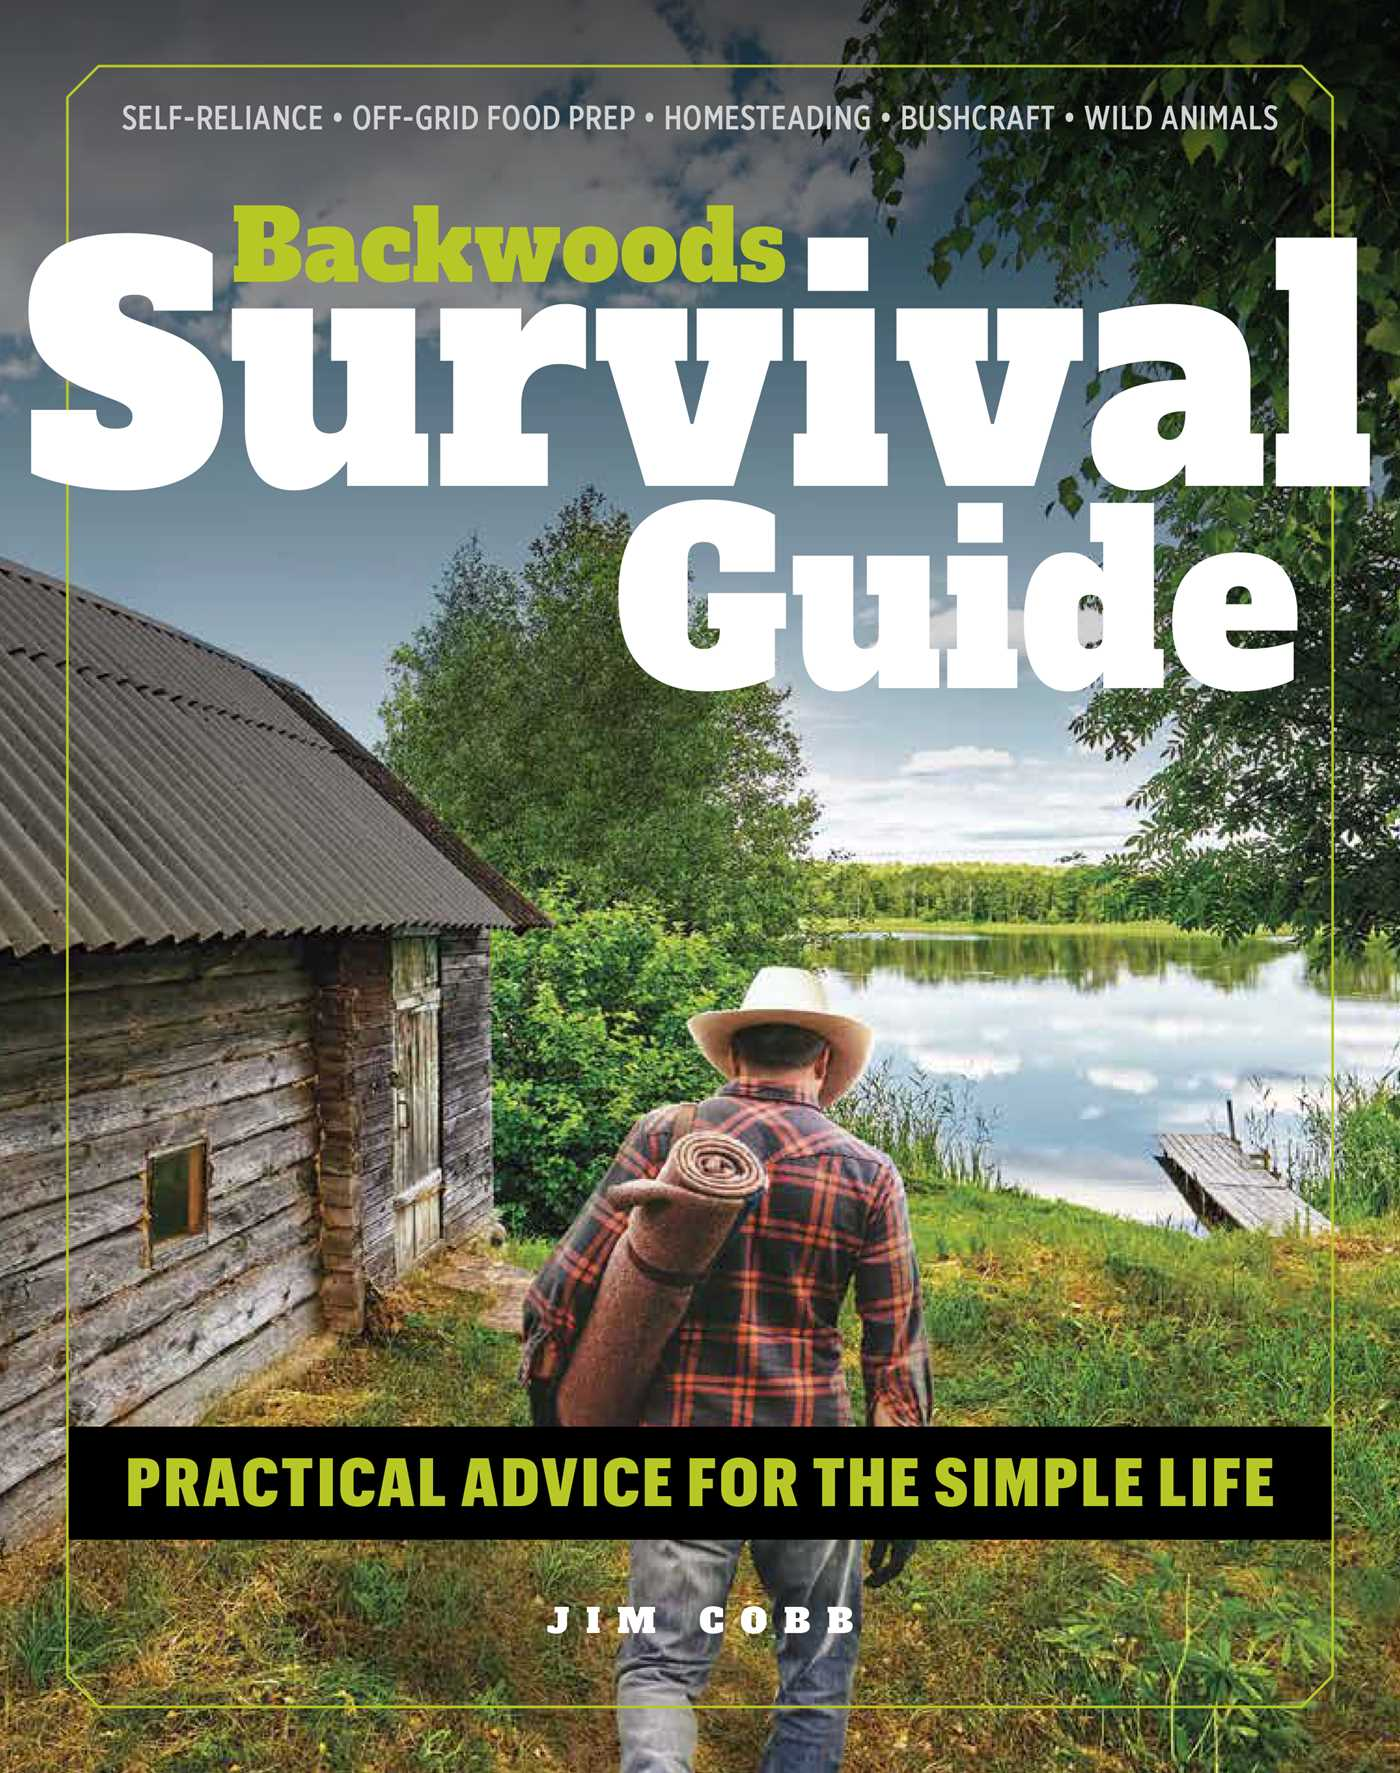 Backwoods Survival Guide   Book by Jim Cobb   Official